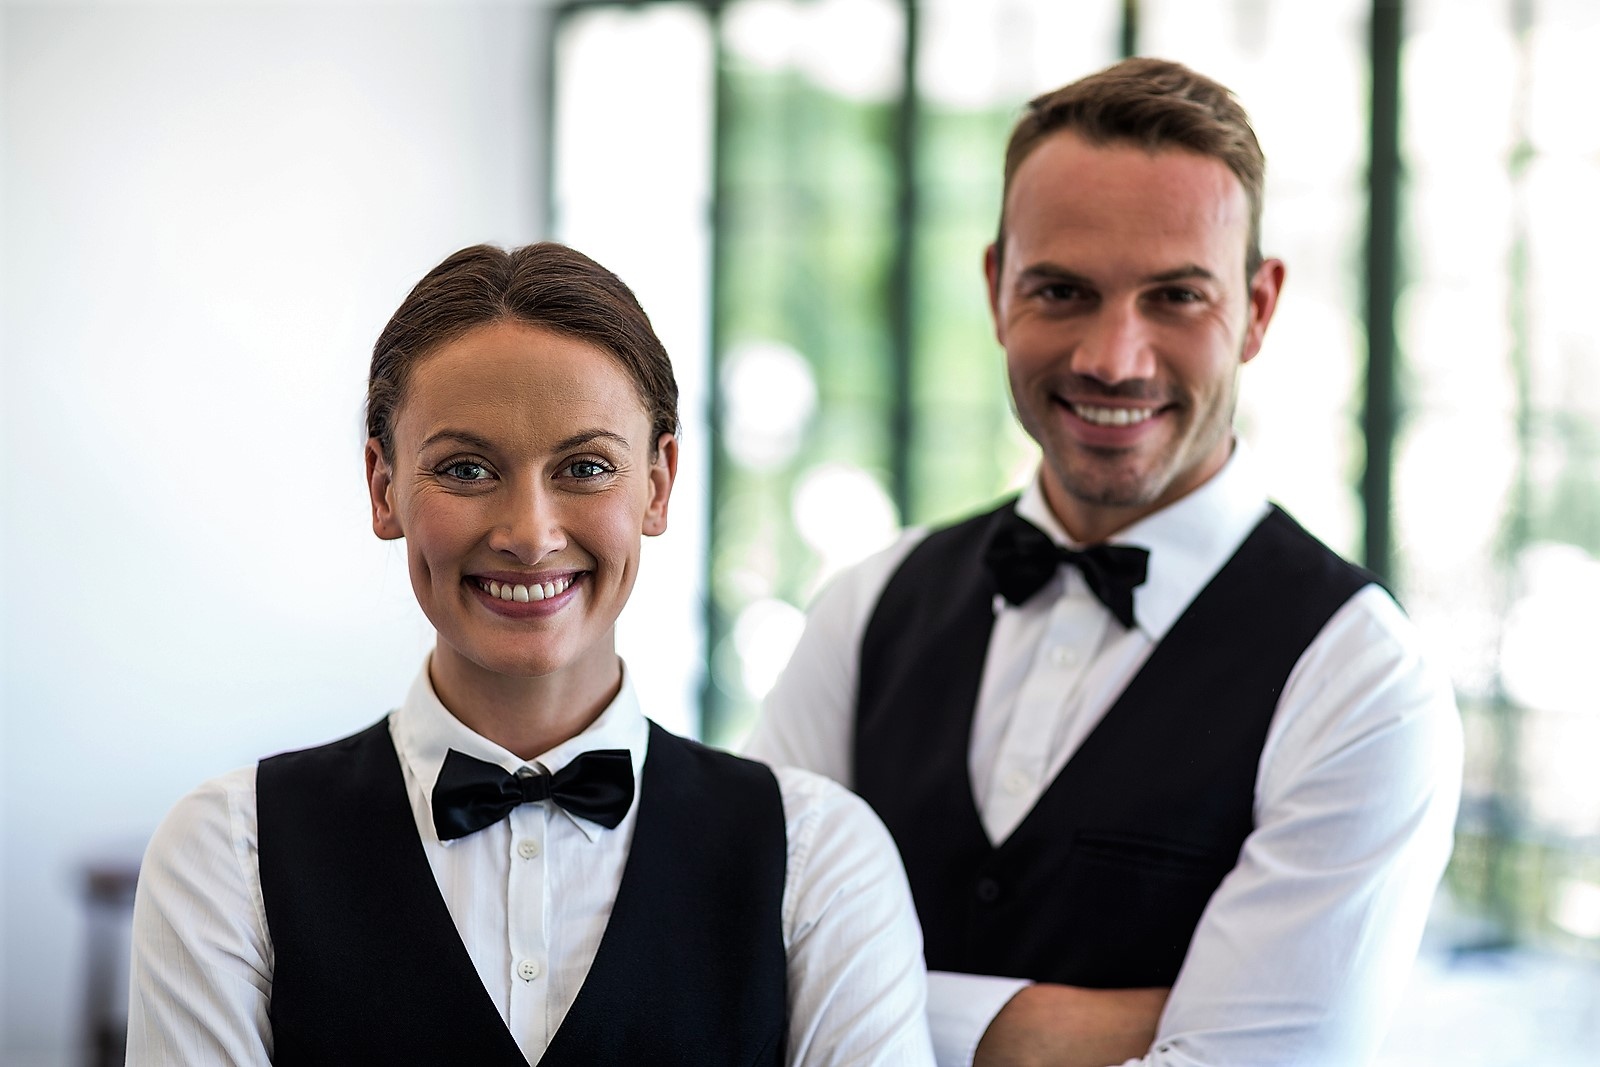 improve waitstaff training